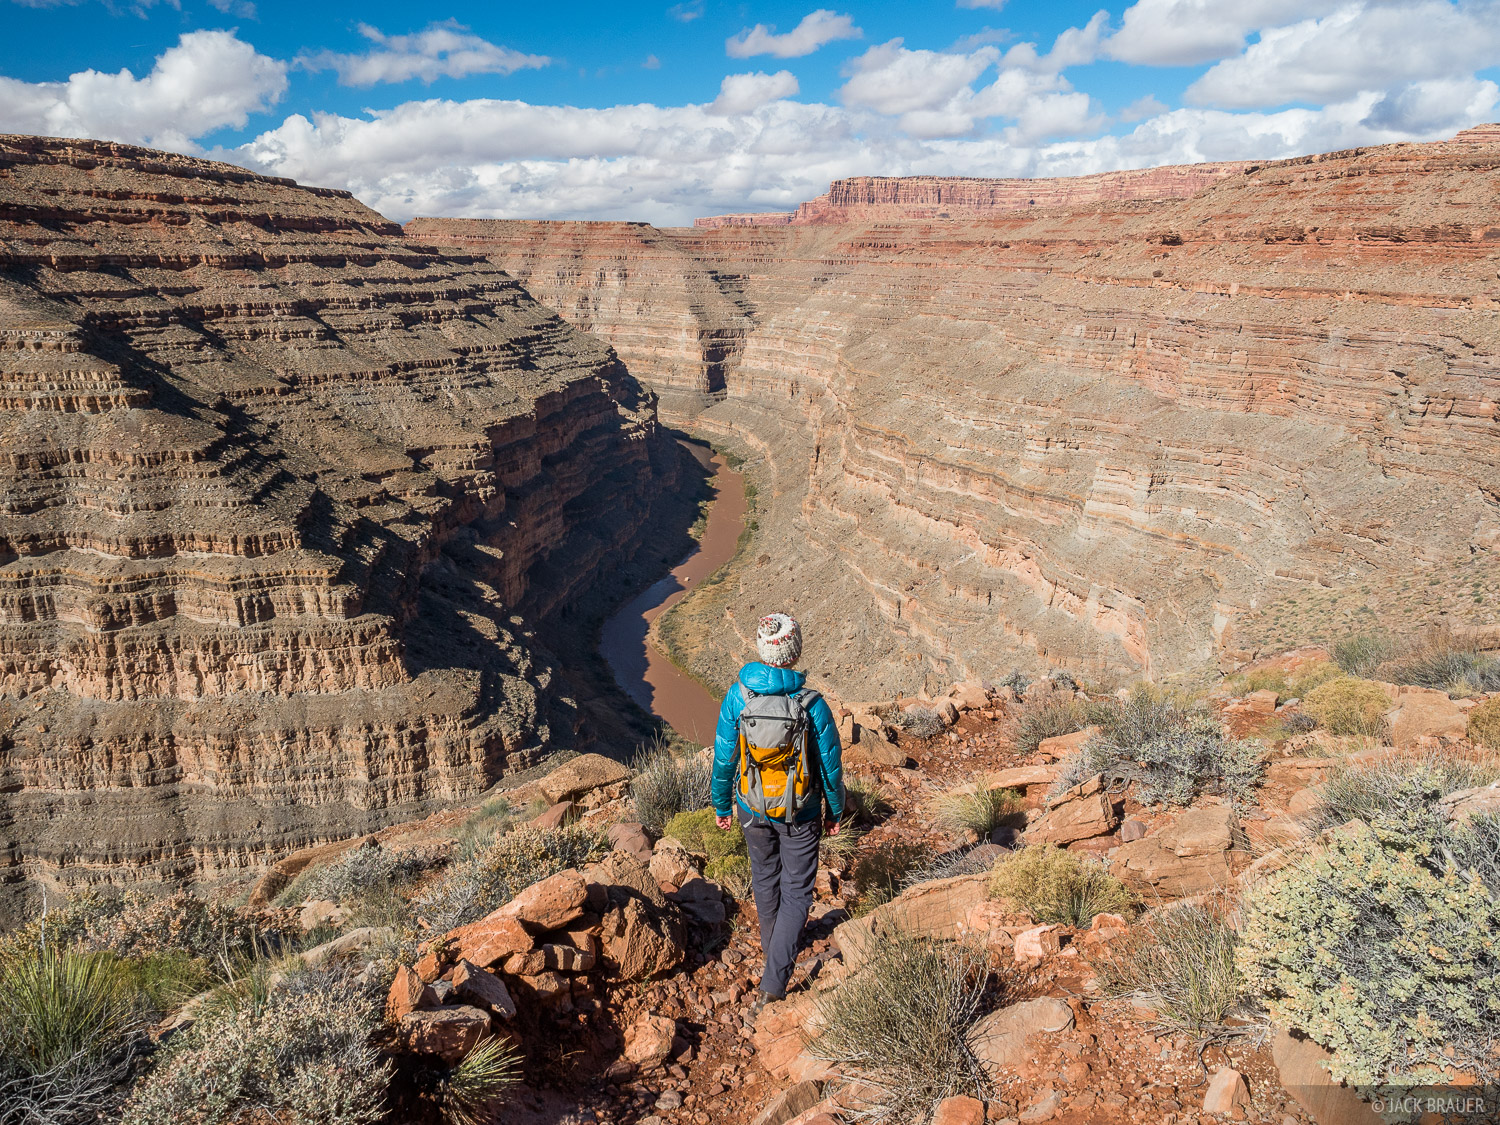 Hiking the Honaker Trail down to the San Juan River.